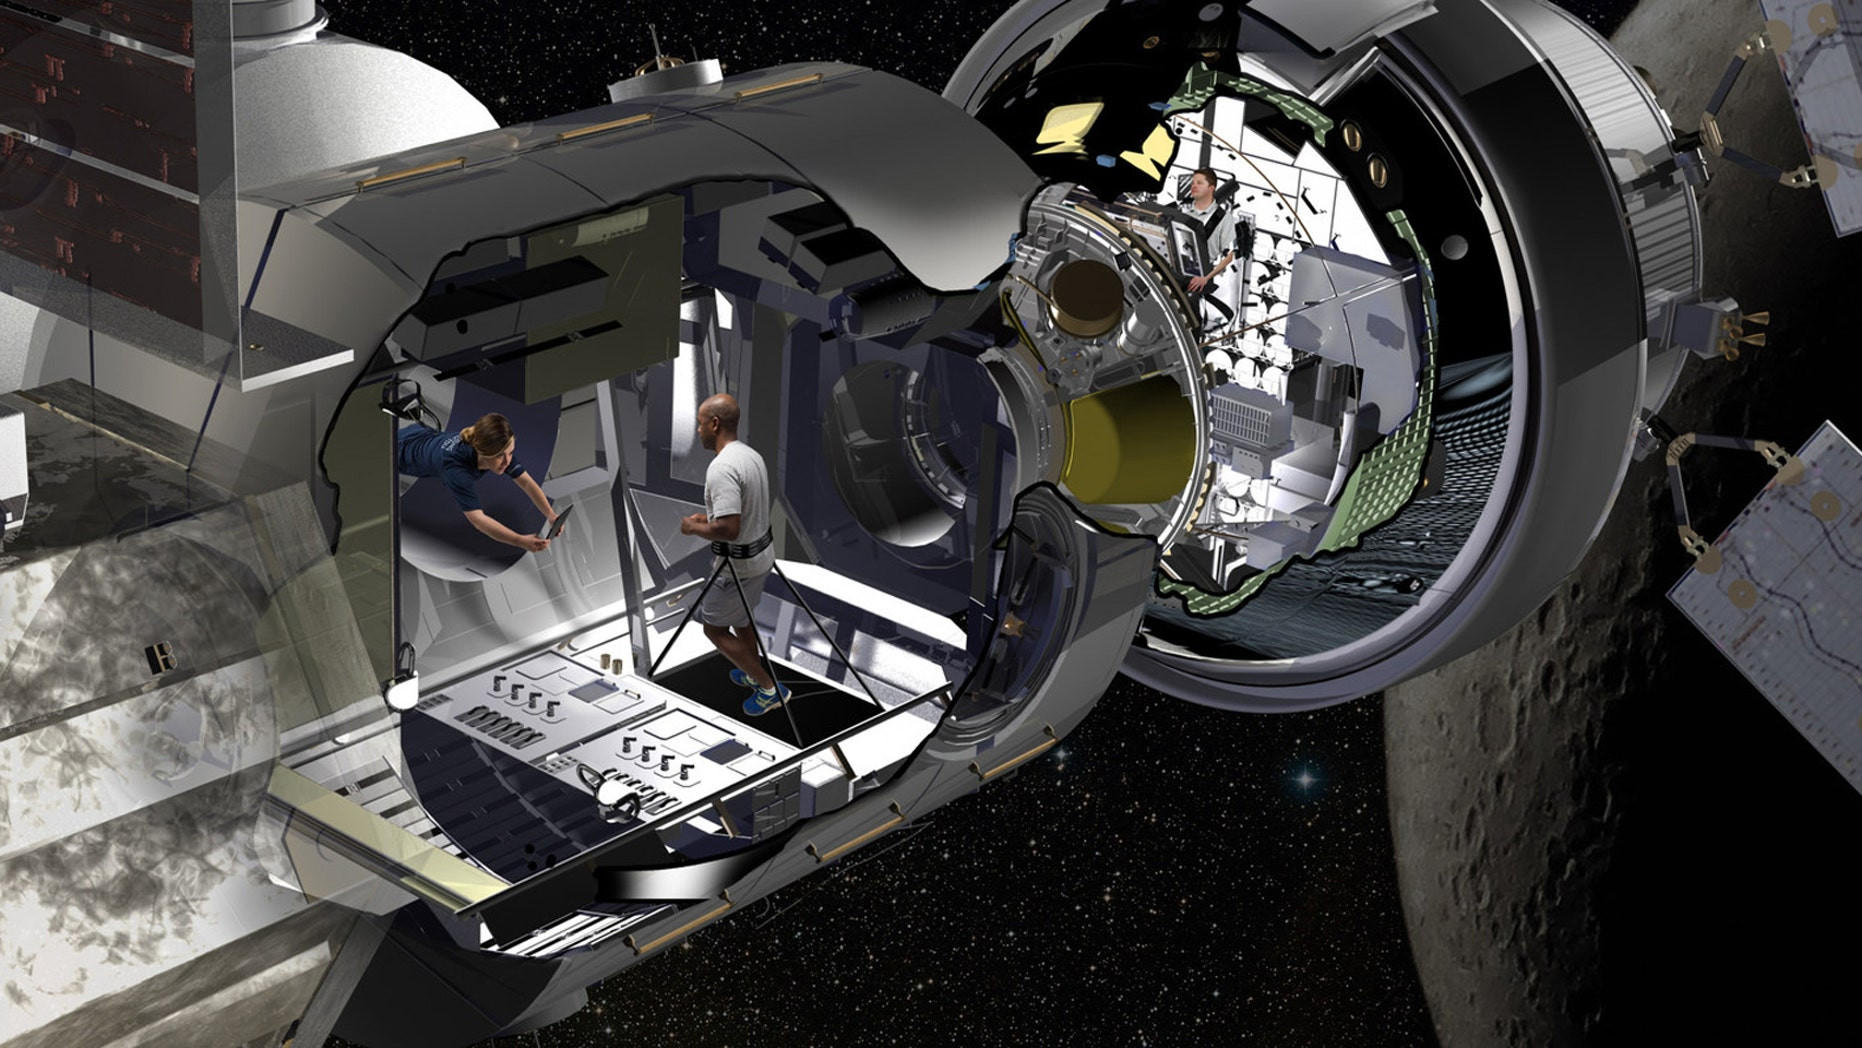 Lockheed Martin artist rendering of the NextSTEP habitat docked with Orion in cislunar orbit as part of a concept for the Deep Space Gateway. Orion will serve as the habitat's command deck in early missions, providing critical communications, life support and navigation to guide long-duration missions. (PRNewsfoto/Lockheed Martin)